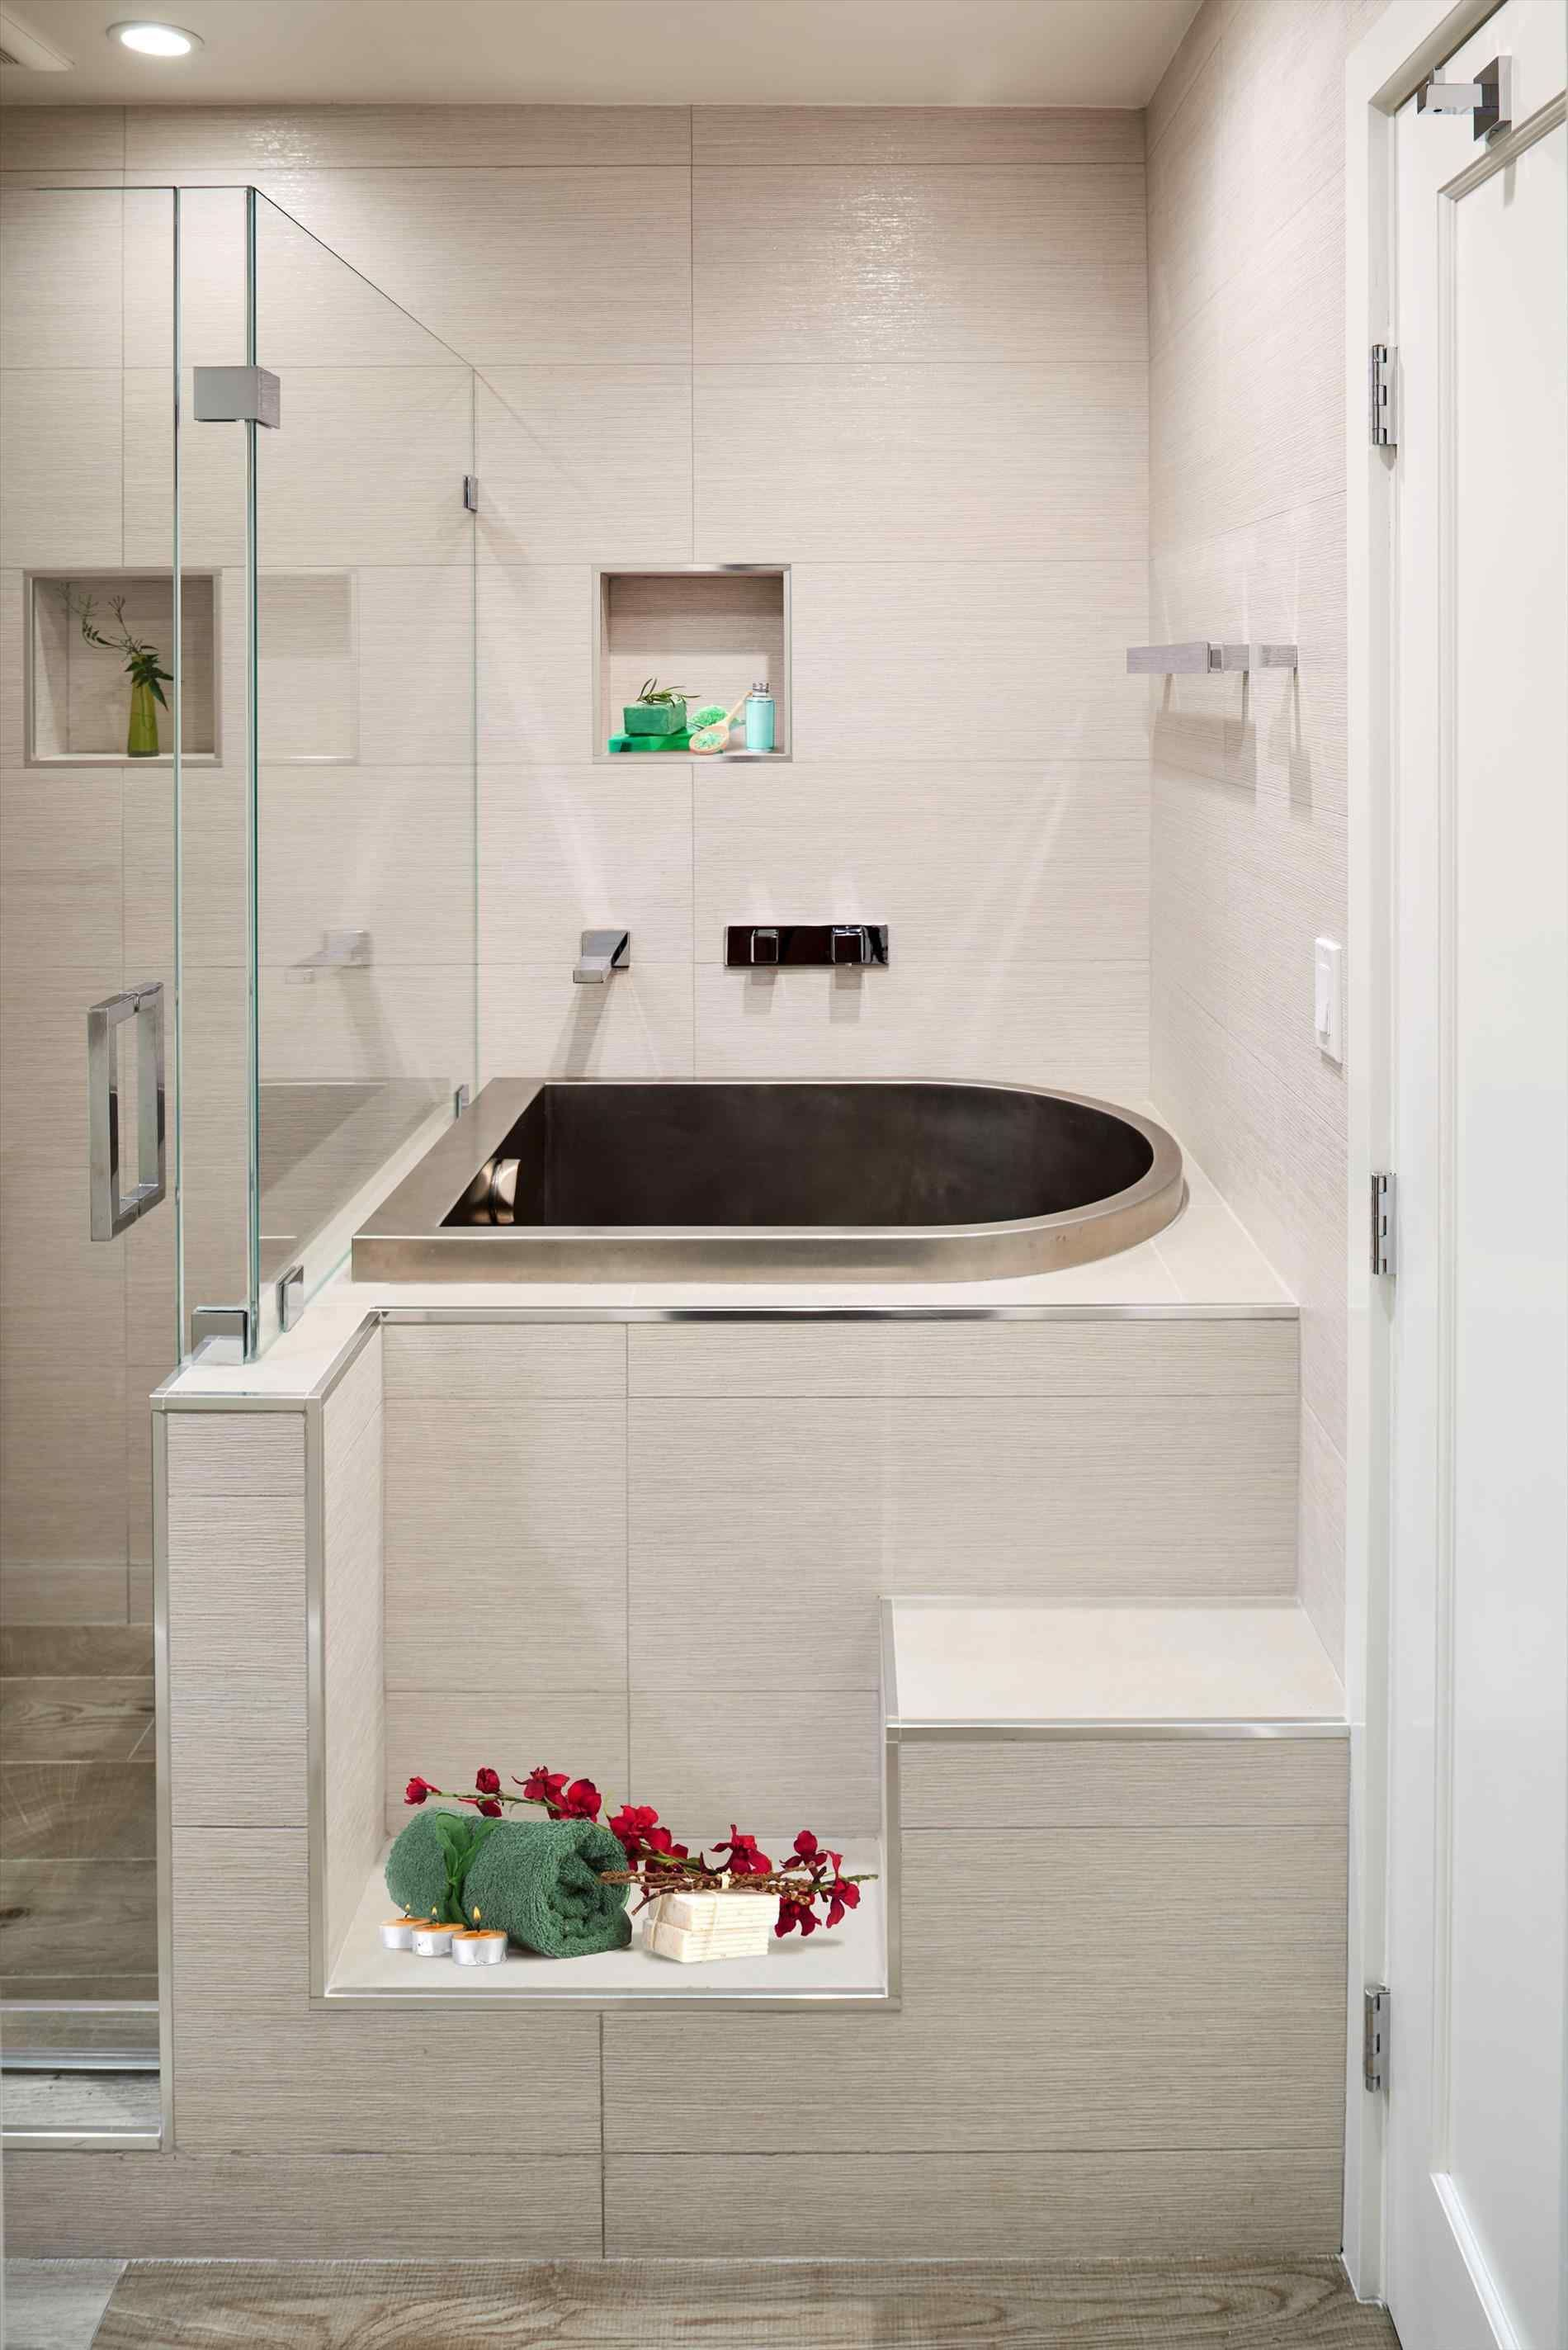 Incredible Japanese Tub Shower Combination Ideas | Pinterest | Tub ...